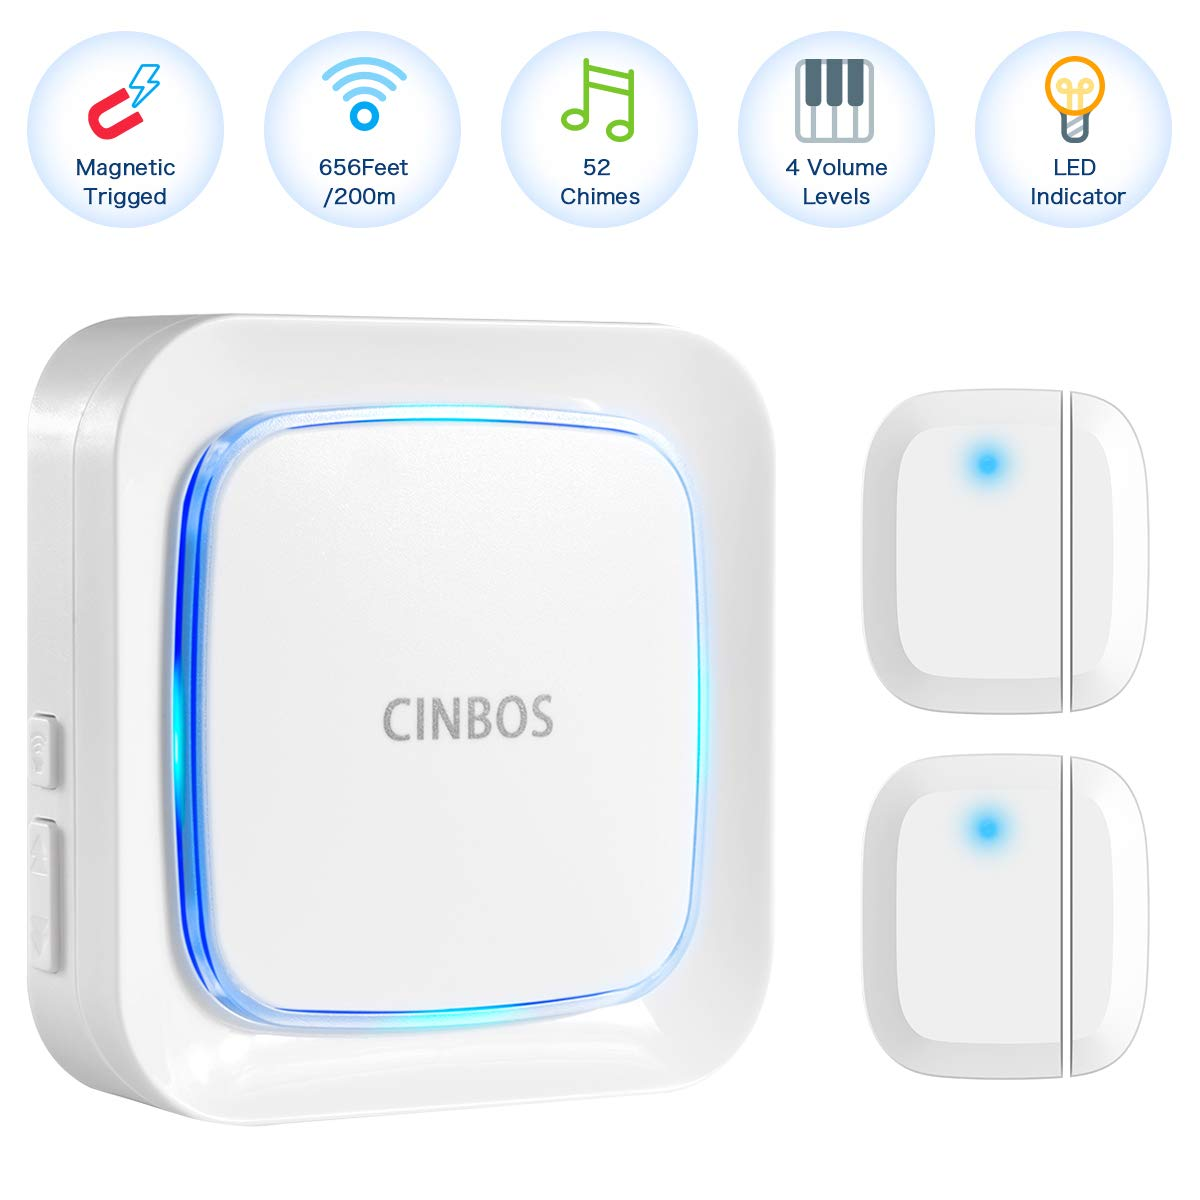 CINBOS Door Alarm for Home/Office,Wireless Door Open Chime Range 656 Feet/52 Chimes/4 Level Volume/LED Indicator Home Security Window Entry Alert Doorbell (2 Sensor + 1 Receiver)